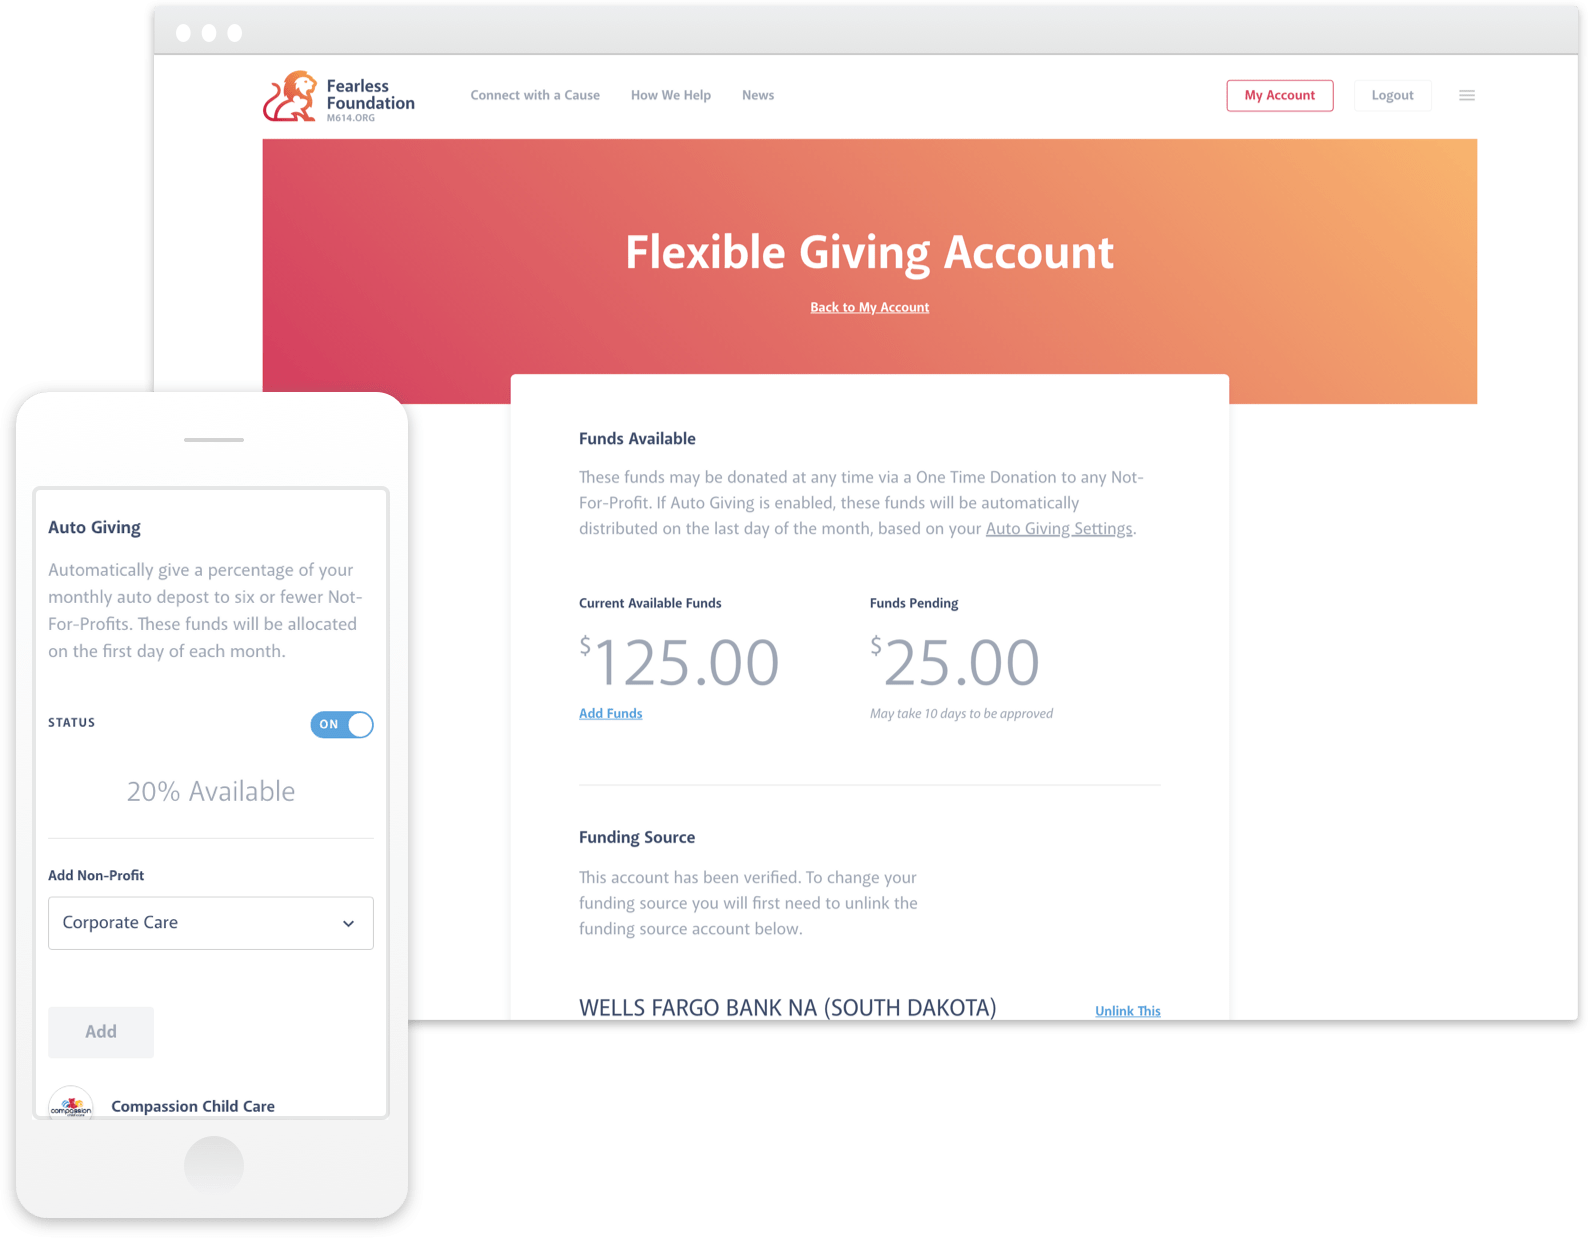 Preview of Flexible Giving Account interface